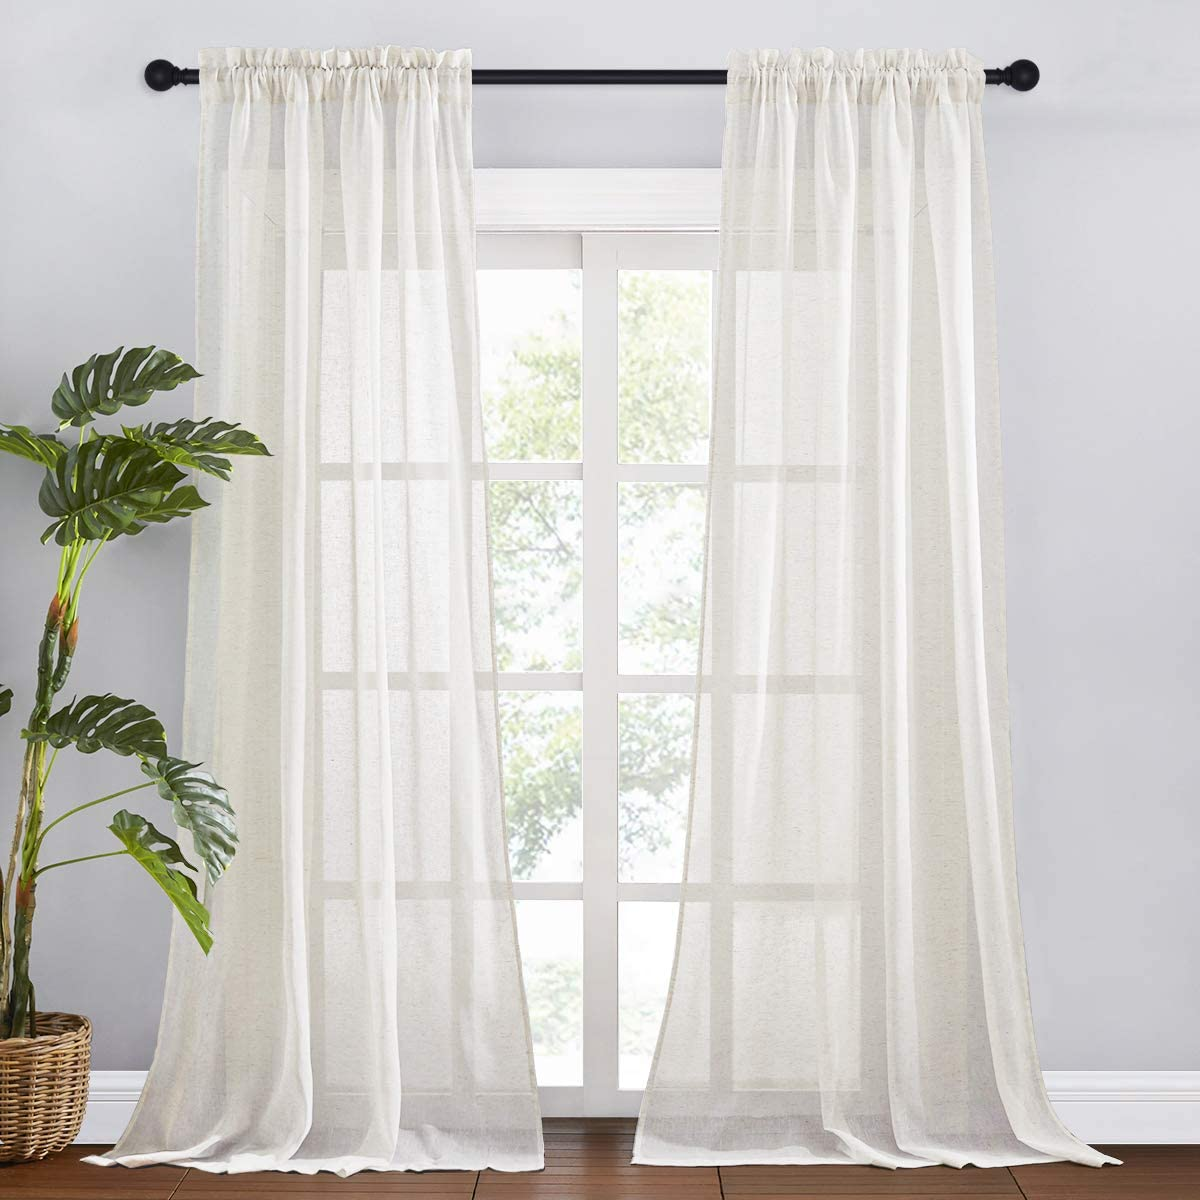 RYB HOME Linen Curtains Semi Sheer Drapes 108 inches Long Rod Pocket Flax Blended Curtains Sunlight Filering Privacy Add for Bedroom Living Room Dining, Ivory, W 52 x L 108 inch, 2 Panels